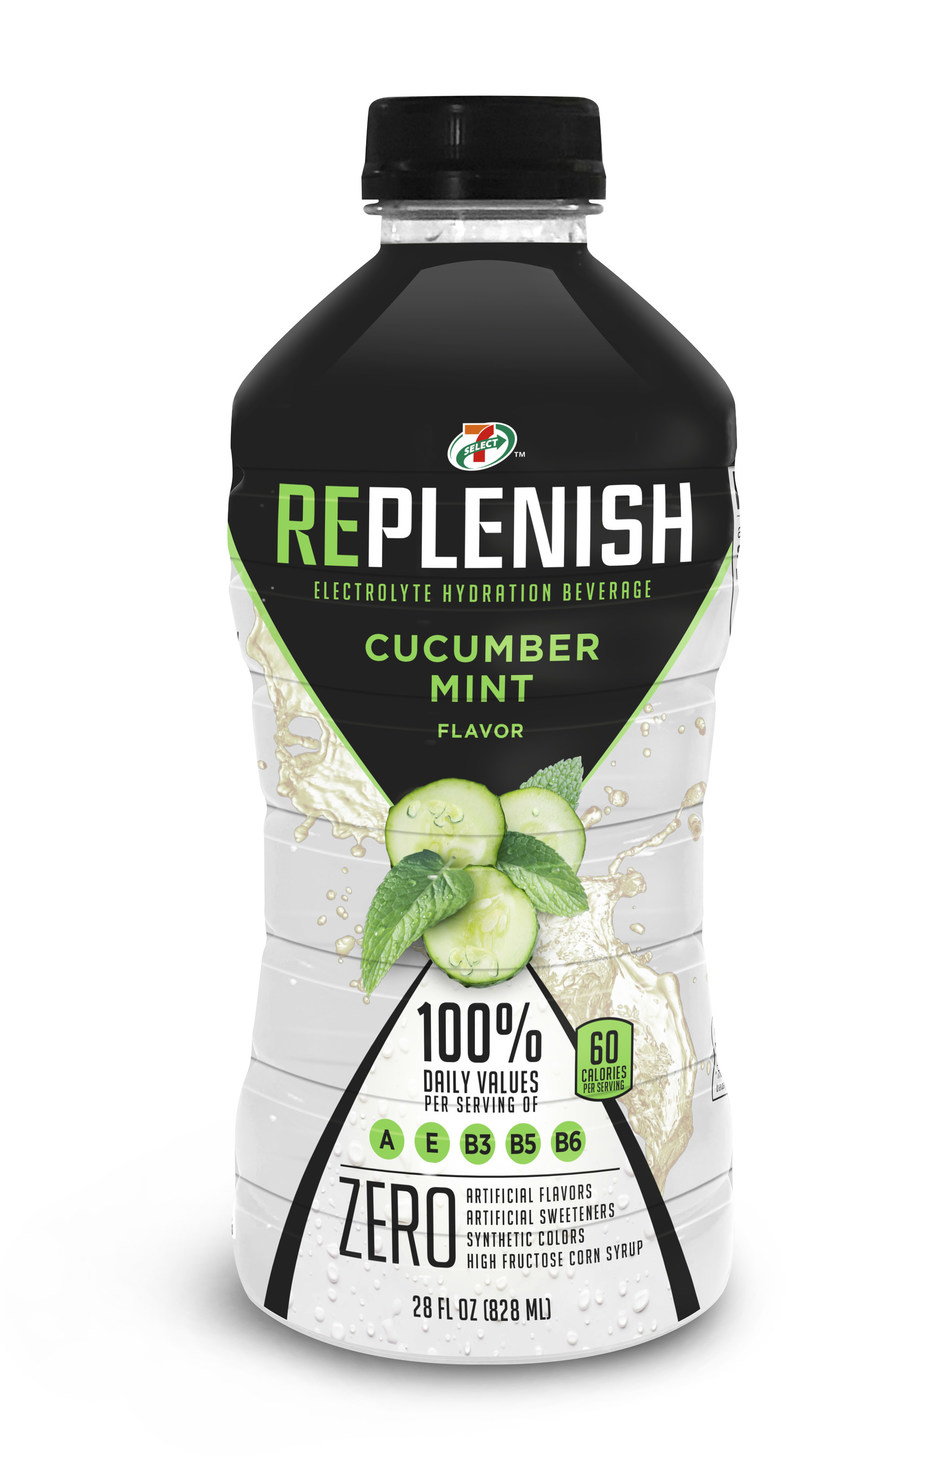 7-Select Replenish™ is a new sports drink (isotonic) that contains no artificial sweeteners or high-fructose corn syrup. Available exclusively at 7-Eleven stores, 7-Select Replenish is available in four flavors: lemonade, orange mango, cucumber mint, and guava splash. While the everyday suggested retail price is $1.99, customers can take advantage of a limited-time buy one-get one free offer.